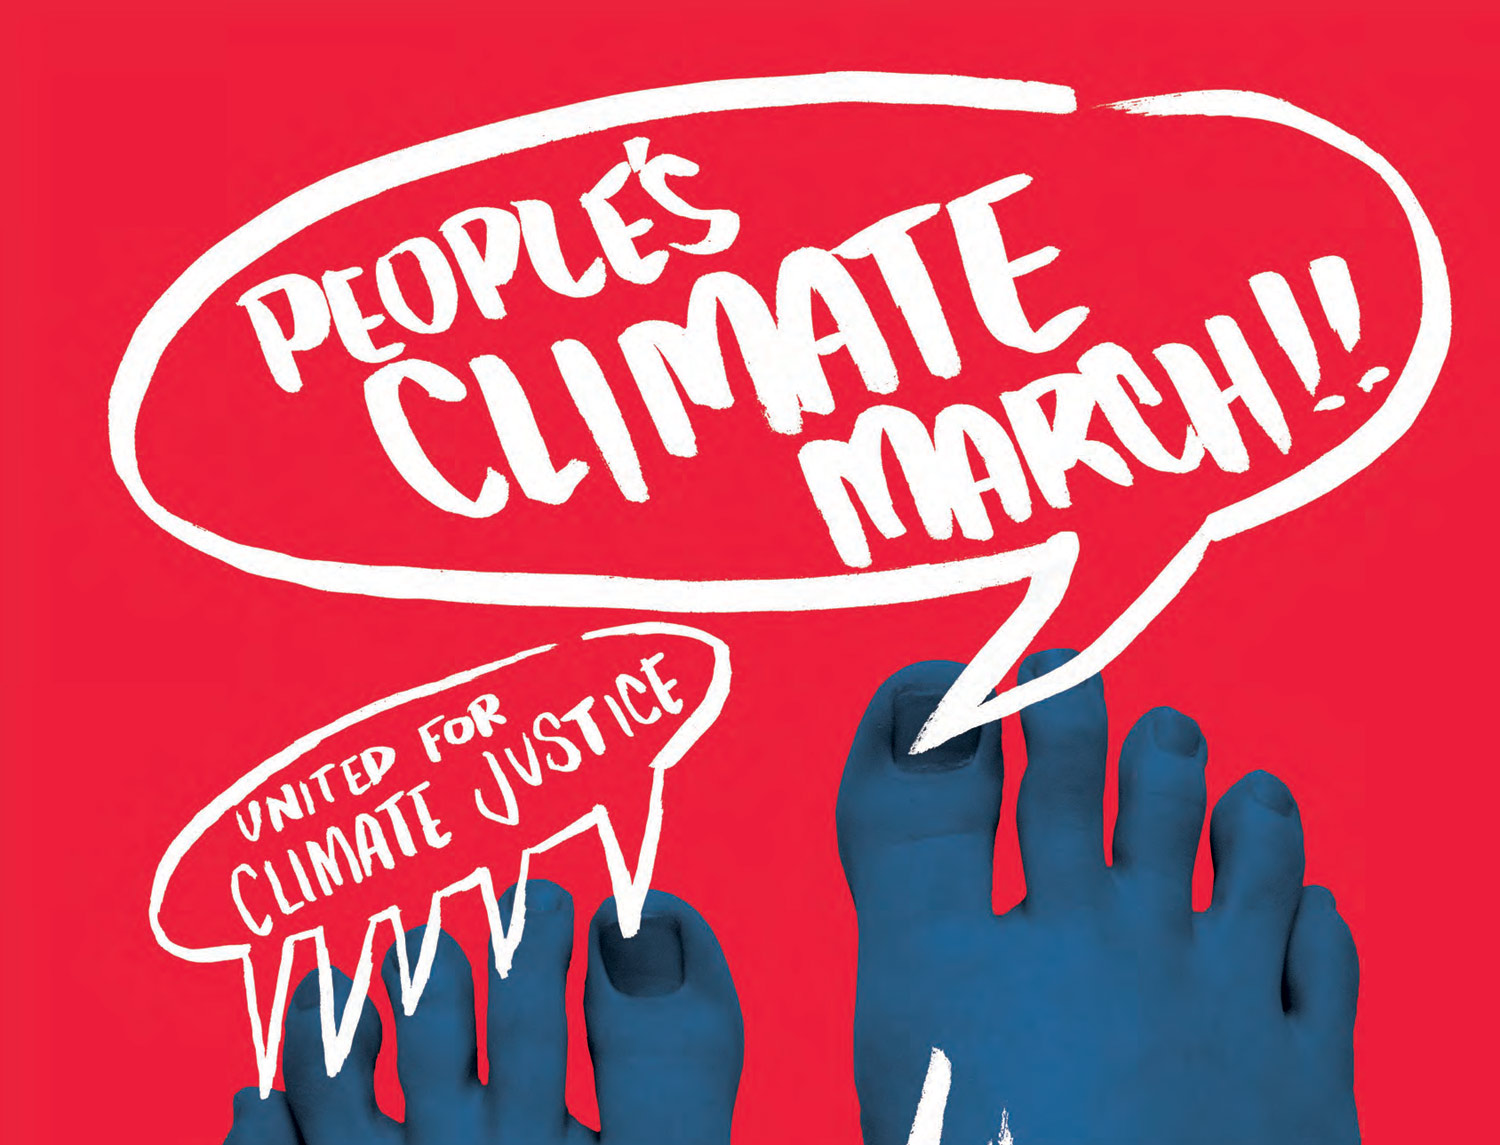 Why-We'll-Be-Marching-in-the-Largest-Climate-Change-Demonstration-in-History